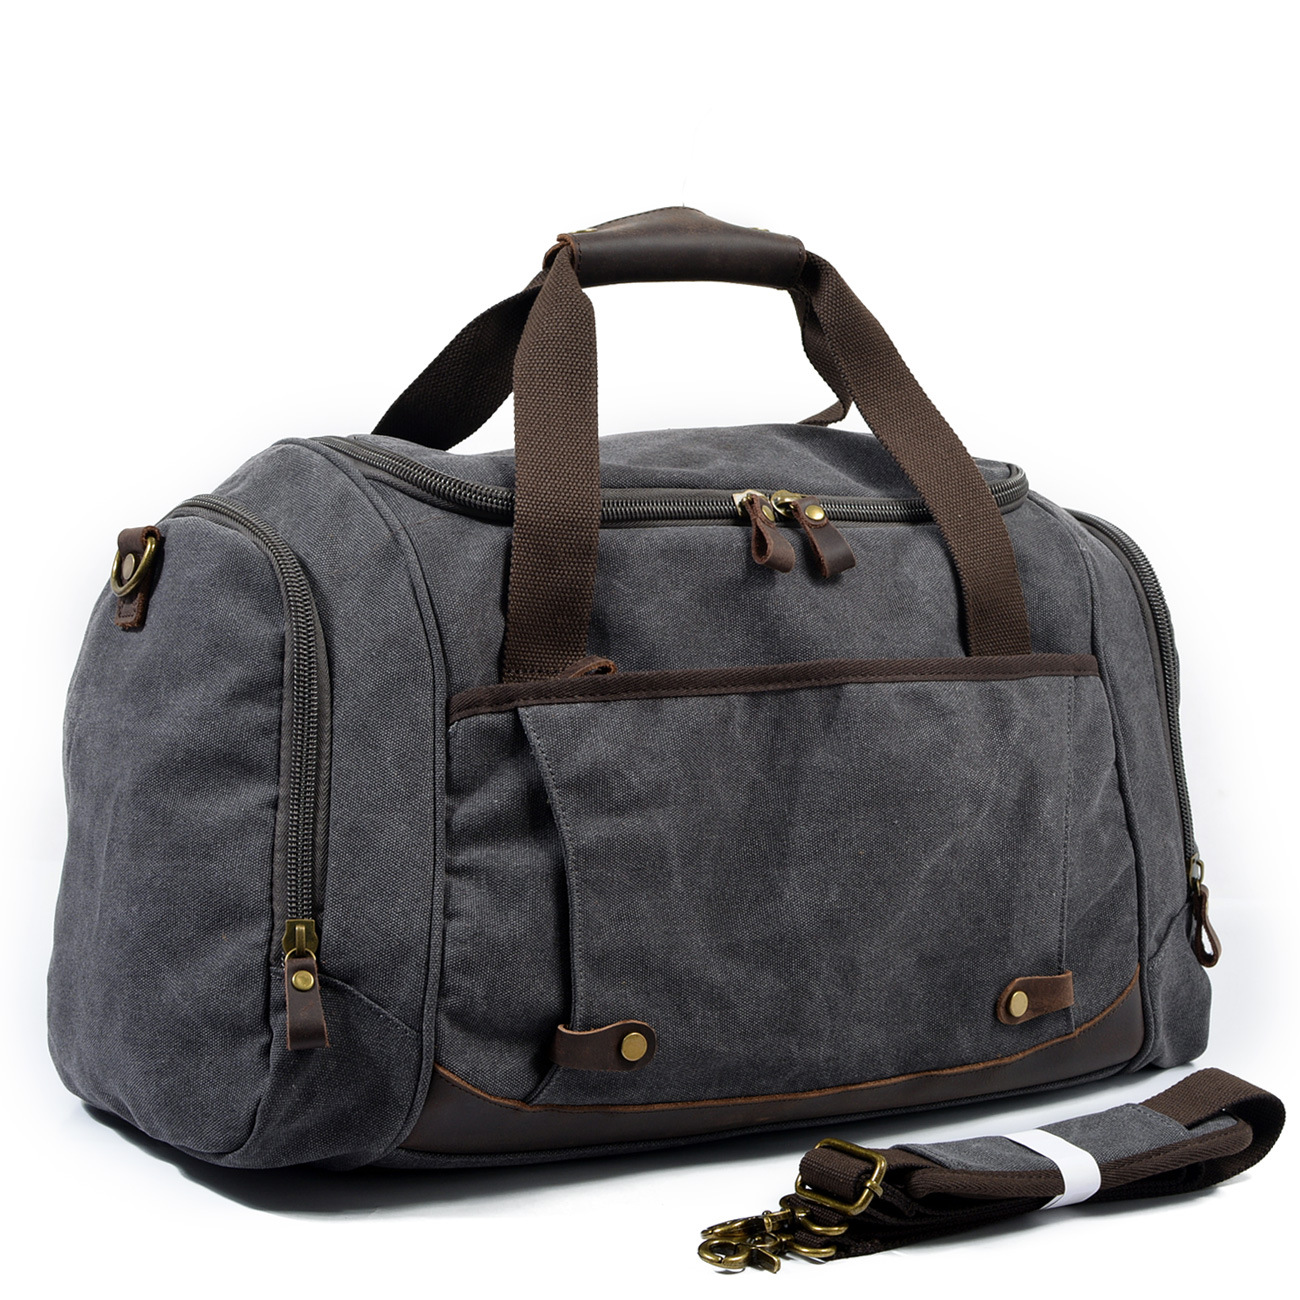 Male Canvas Messenger Bag Handbag Casual Crossbody Shoulder Bag Solid Color Large Capacity Canvas Bag For Travel High Quality big canvas handbag brand high quality large capacity shoulder bag 100% cotton leisure and travel bag for women contracted joker